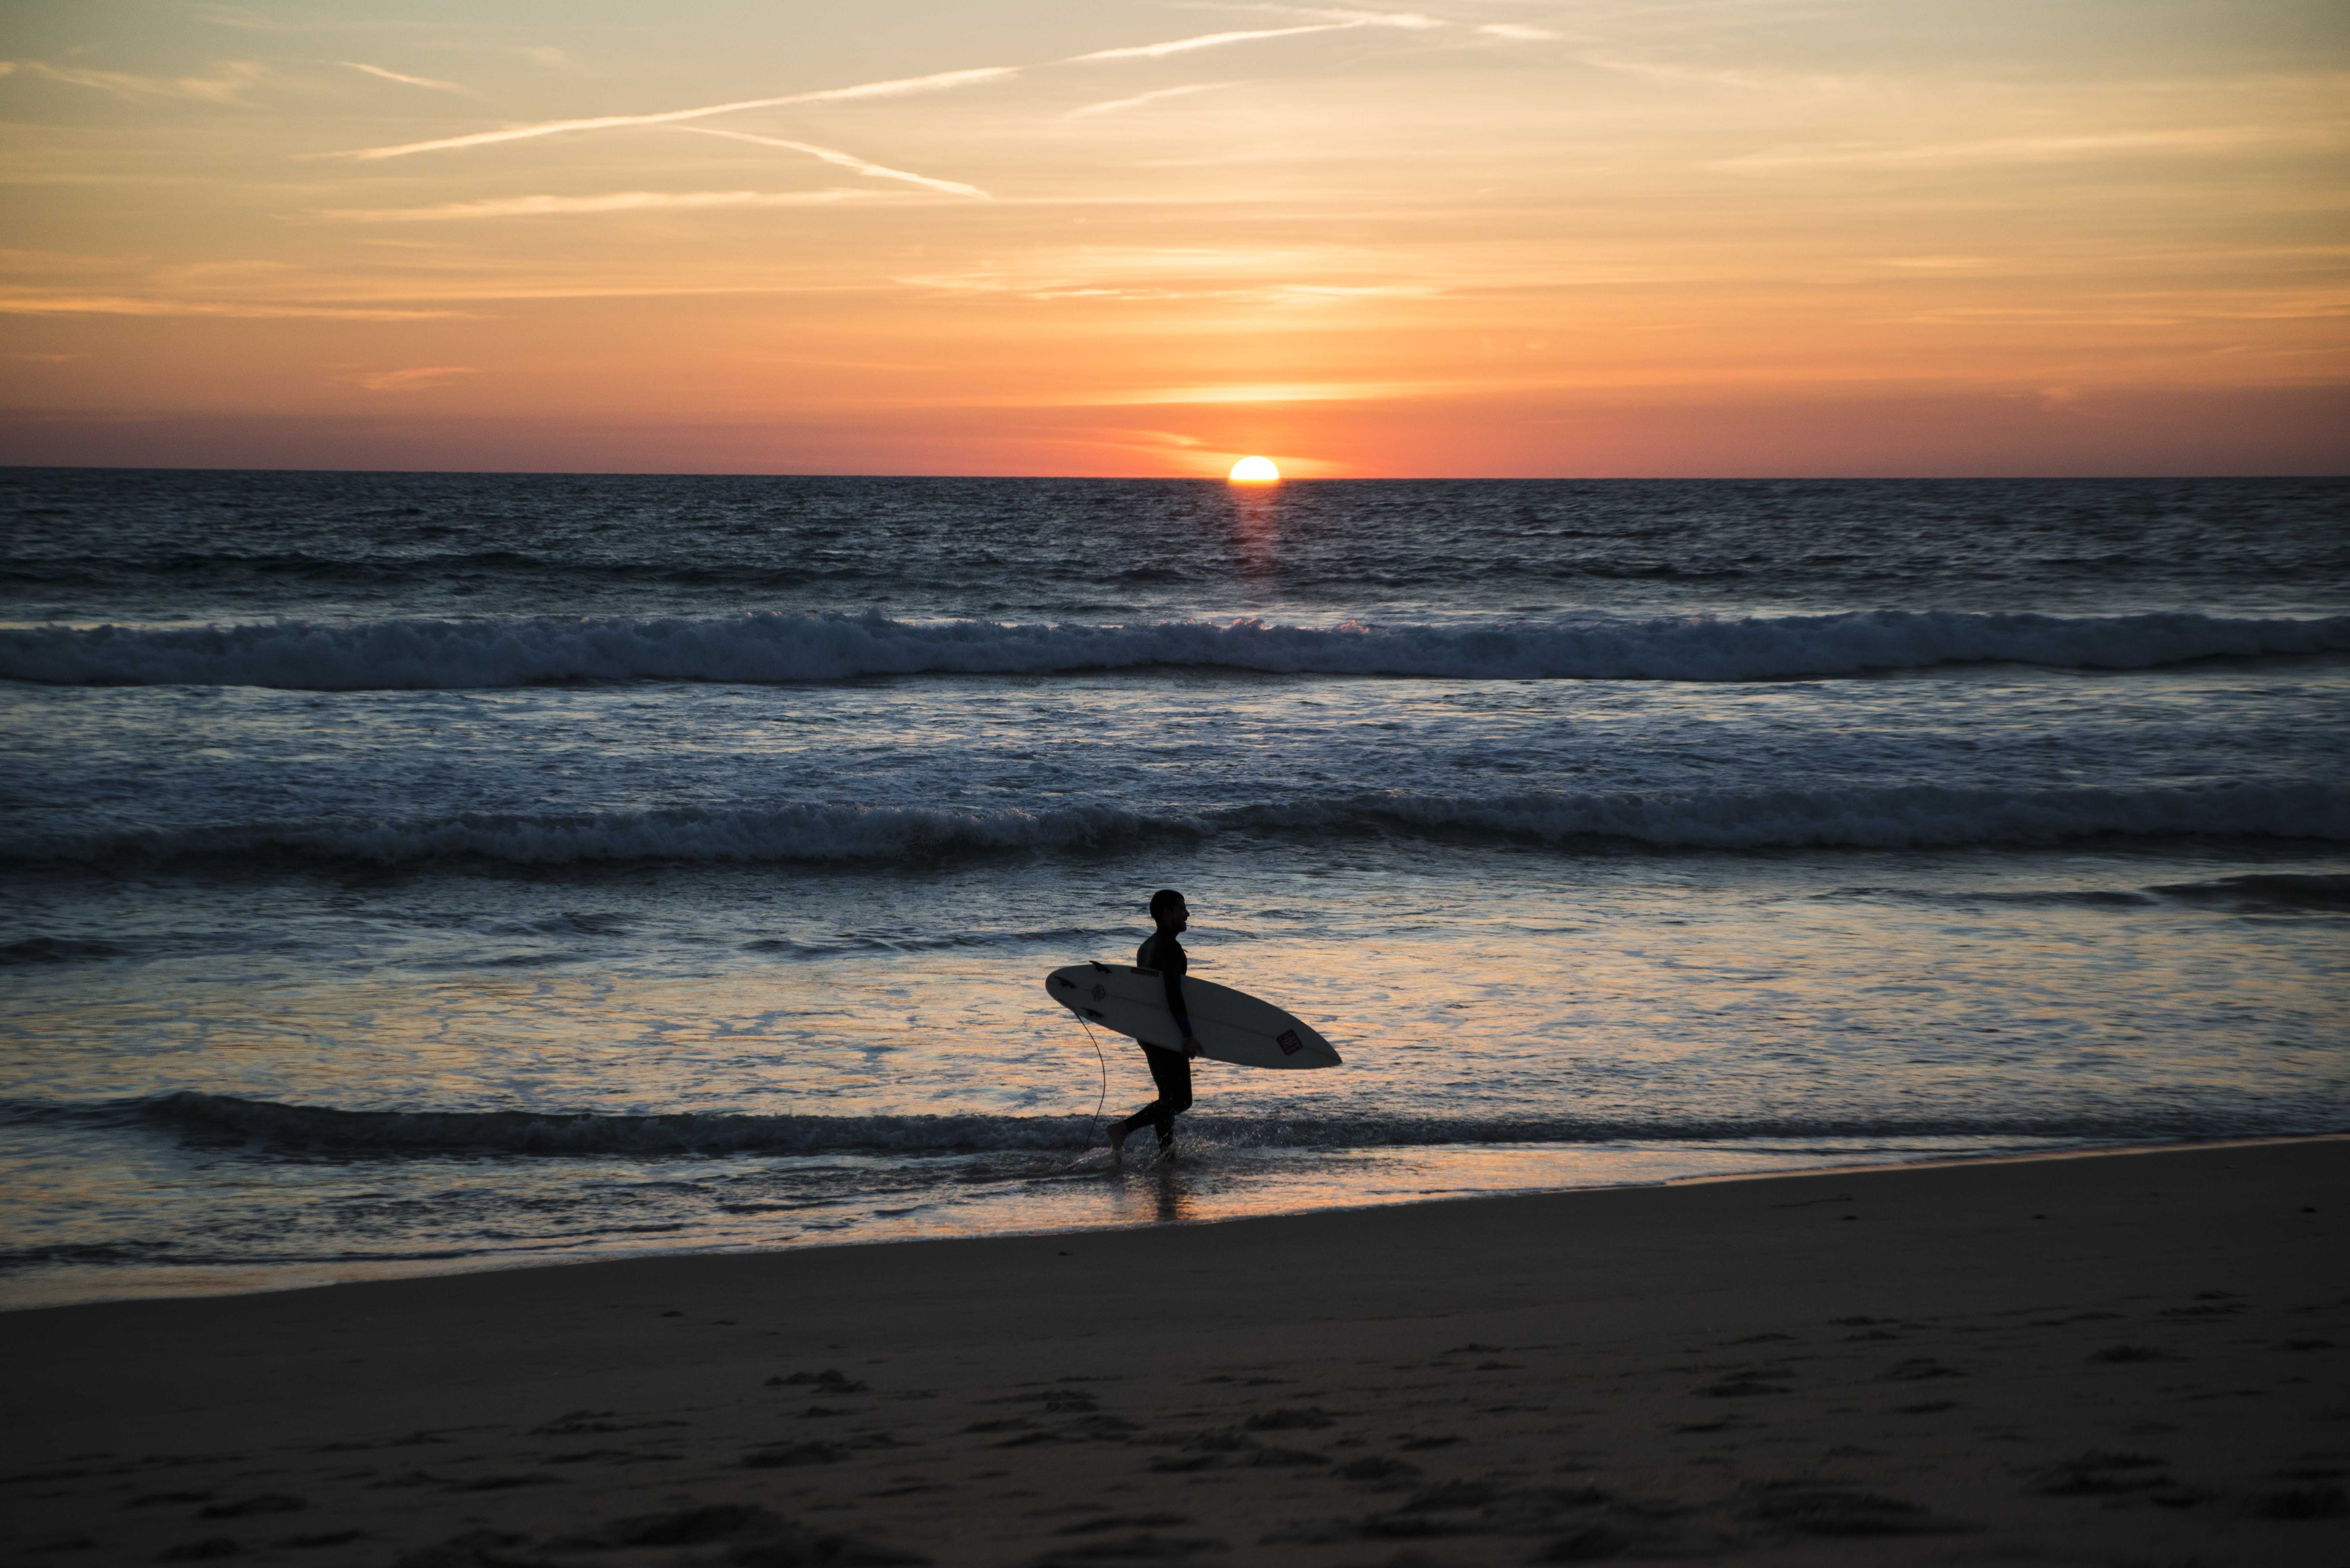 Surfing during the sunset